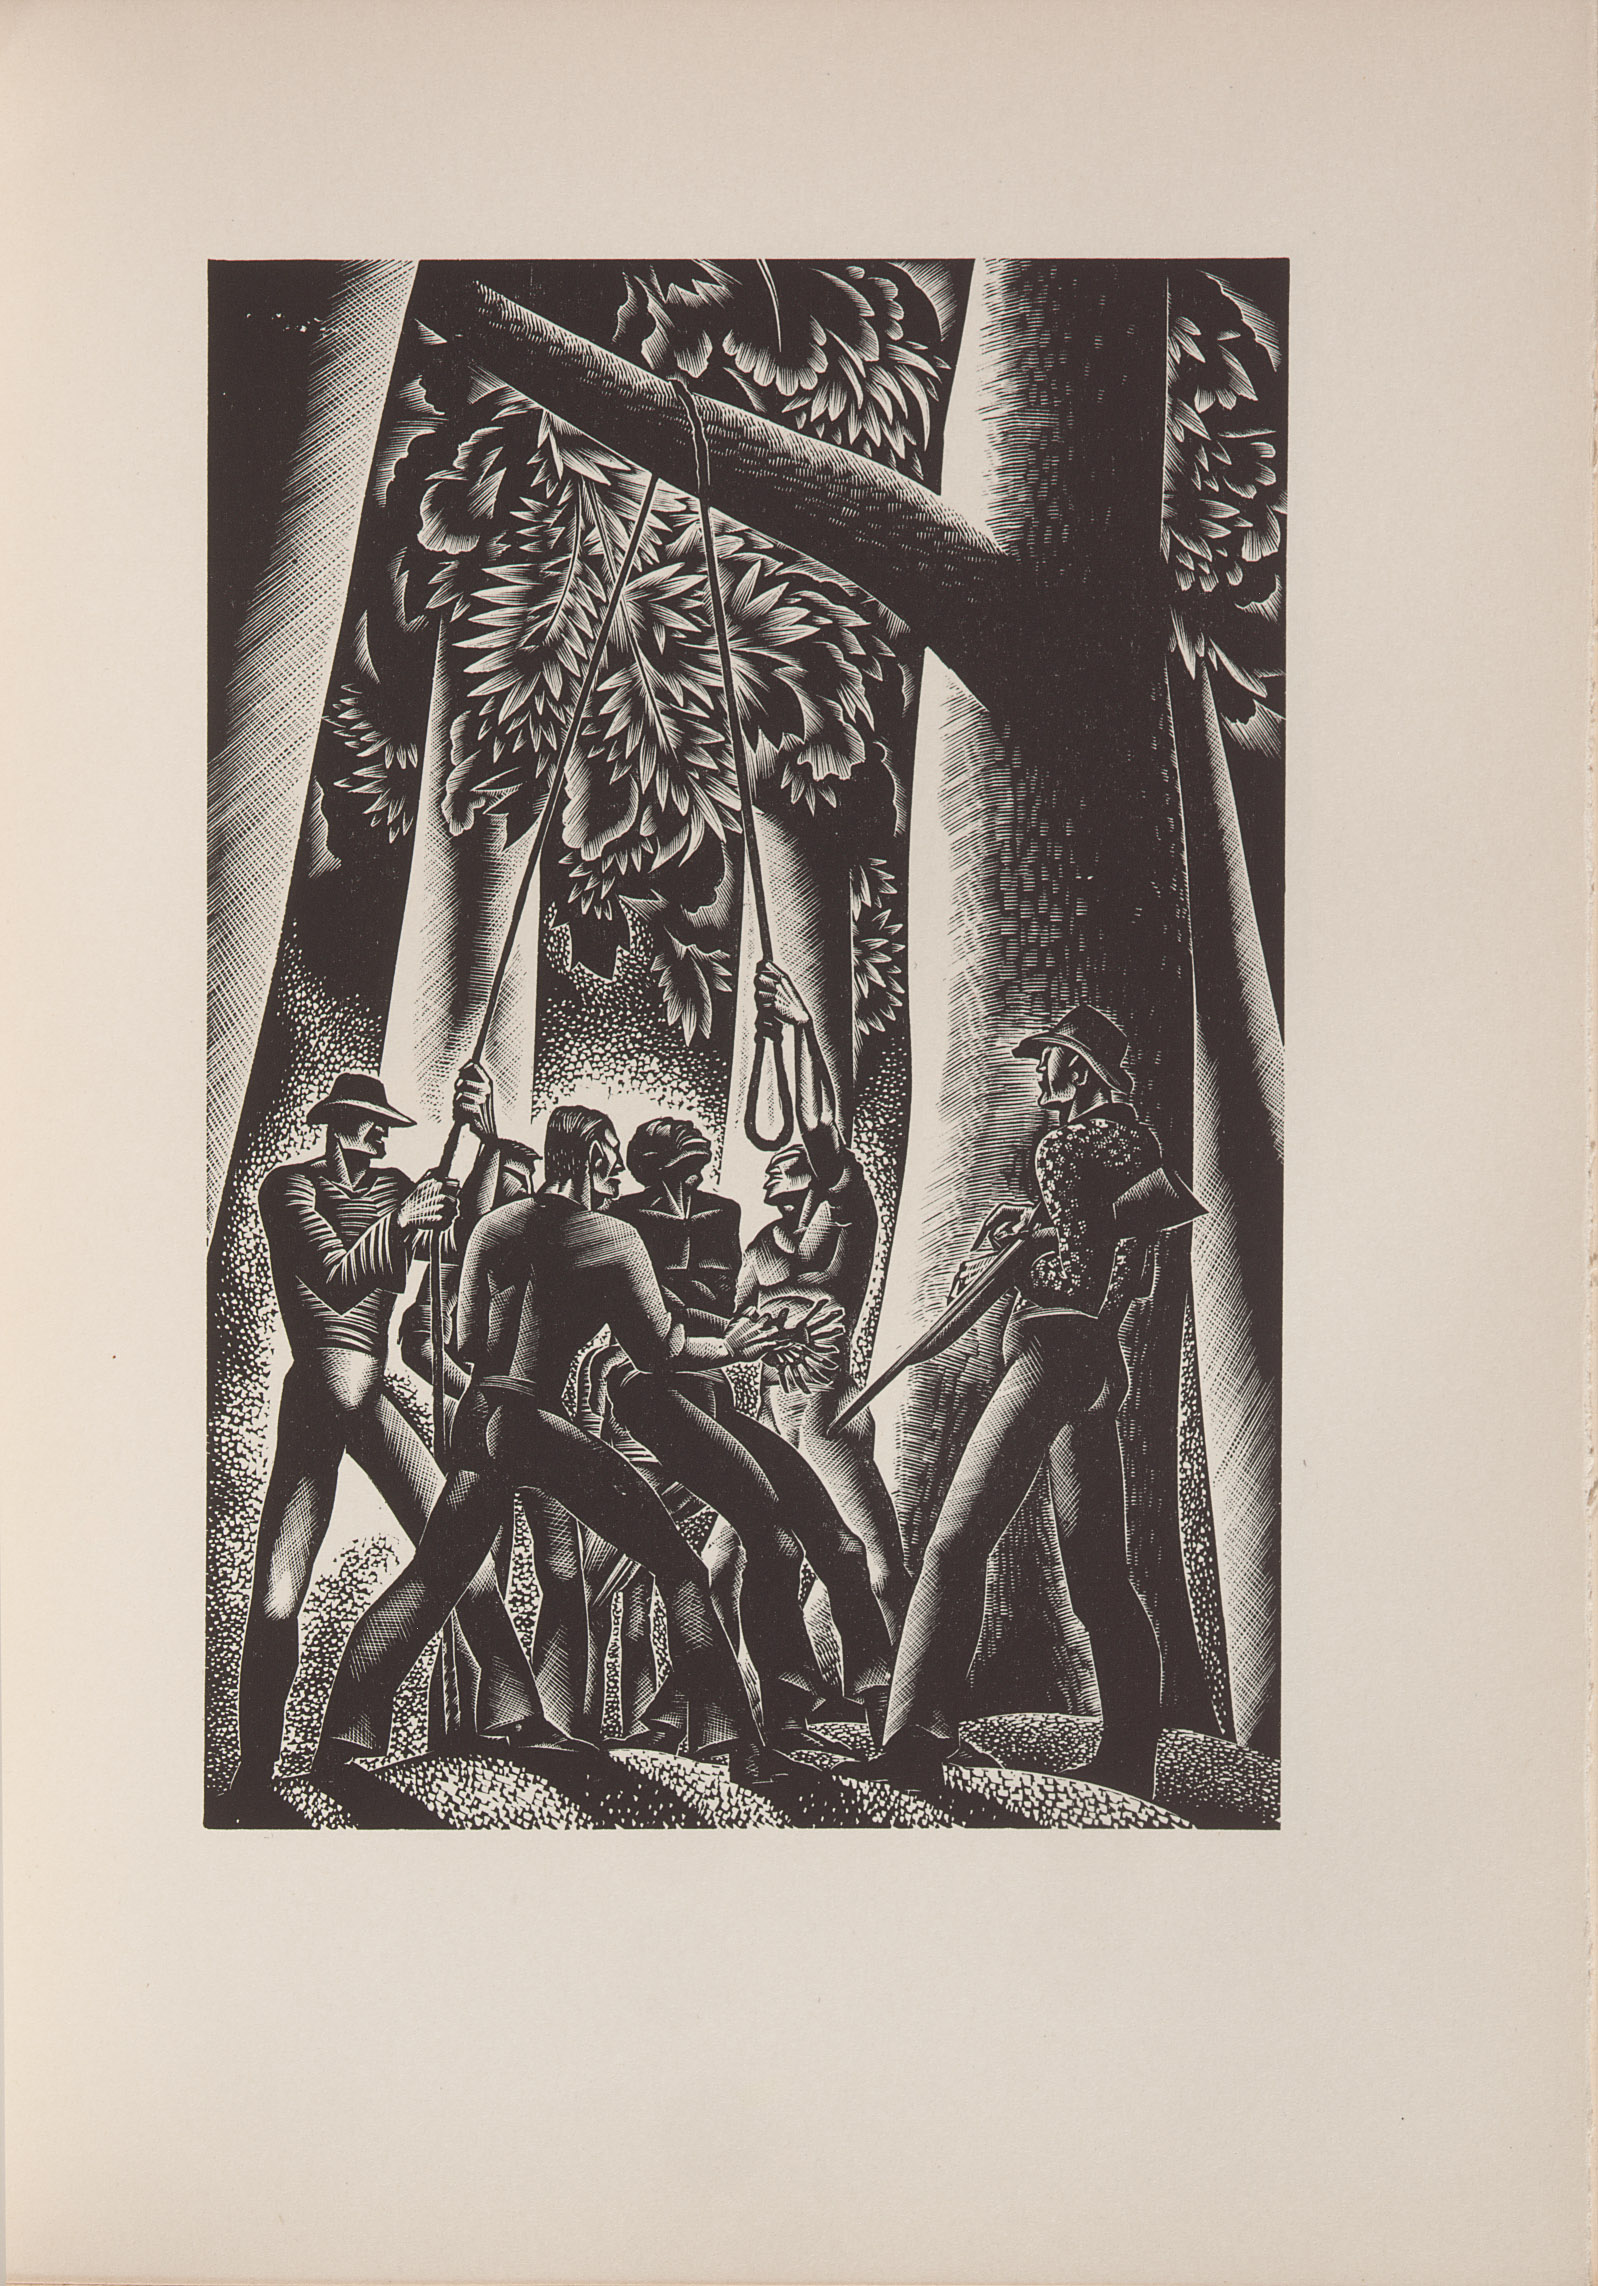 Lynd Ward, wood engraving from Wild Pilgrimage (1932) depicting a Black man about to be lynched by a group of white men.